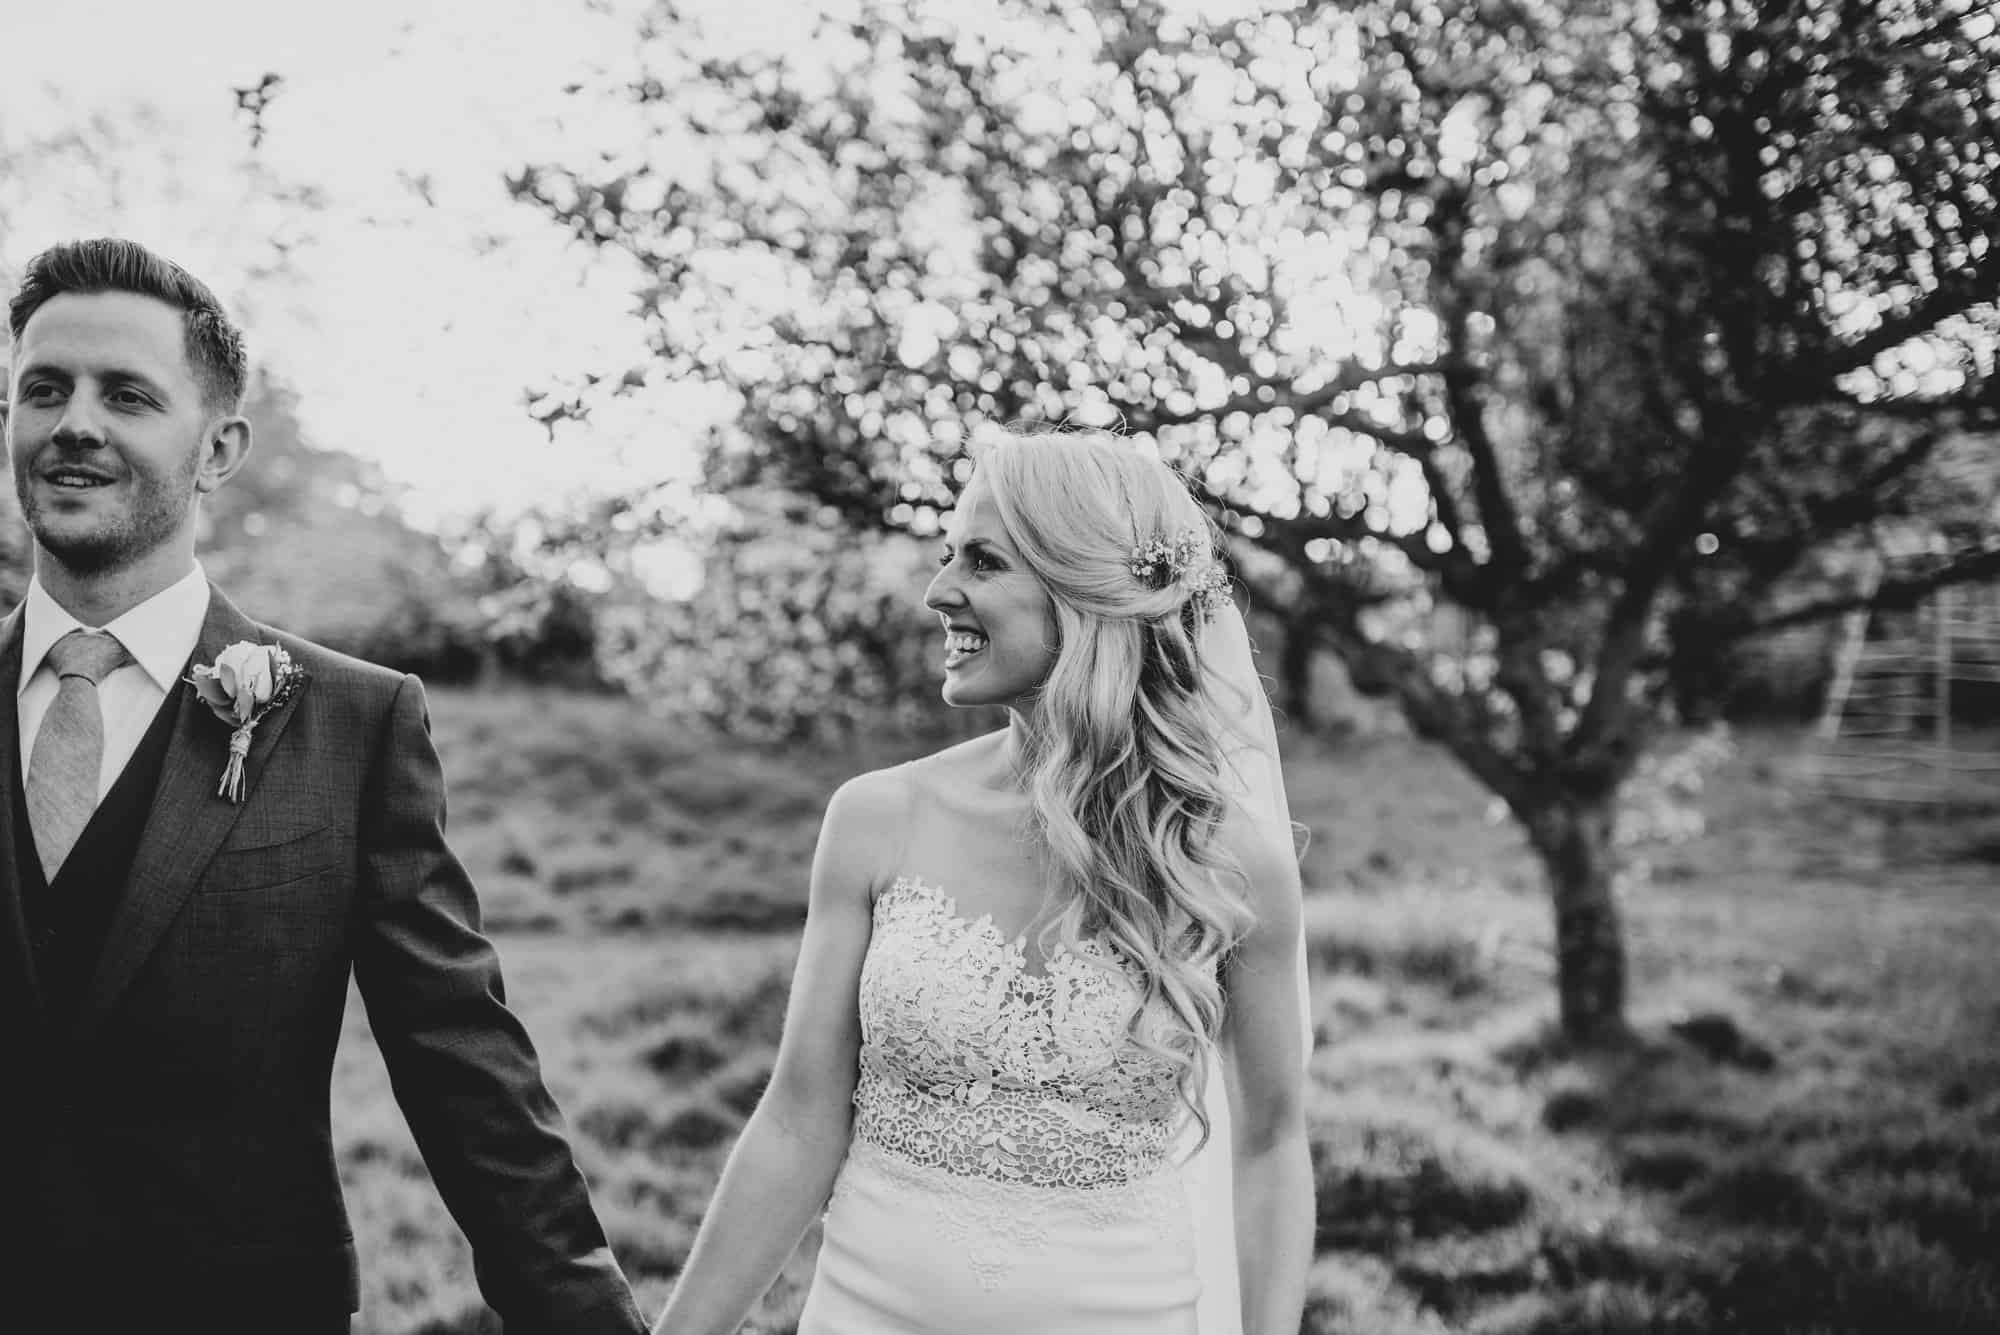 Micklefield Hall wedding photography at sunset